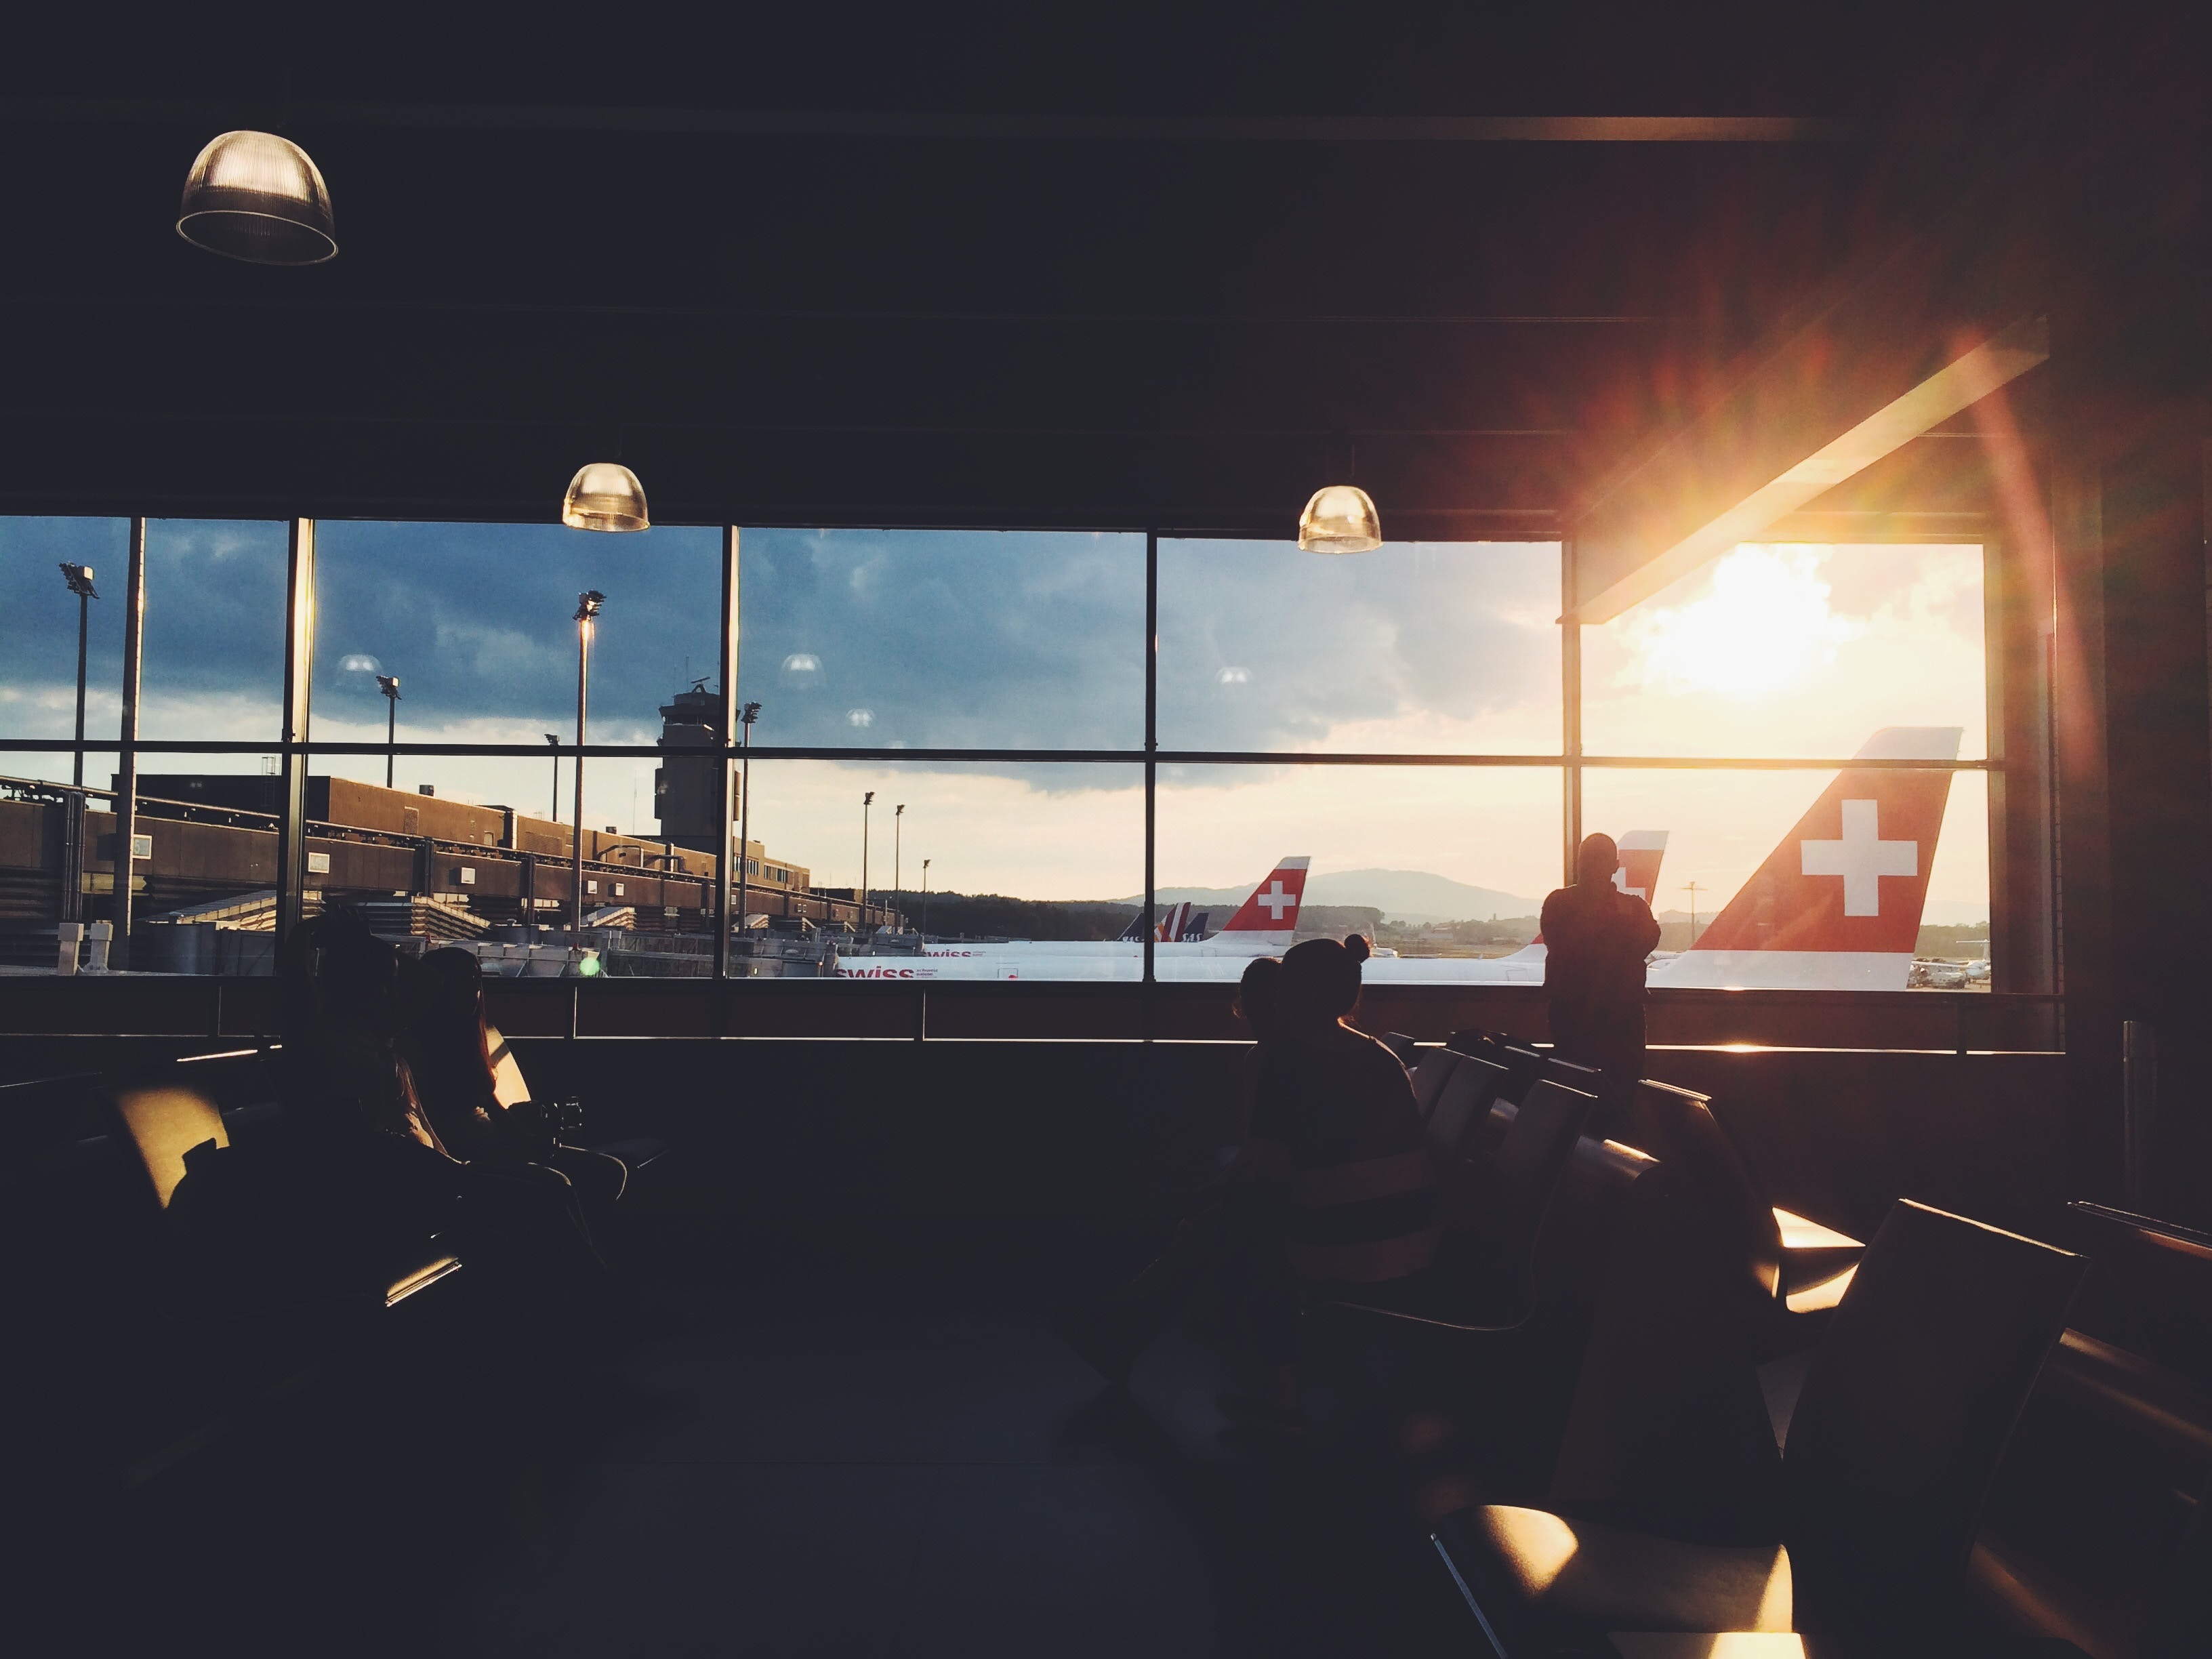 The Layover: Let's Talk Goals